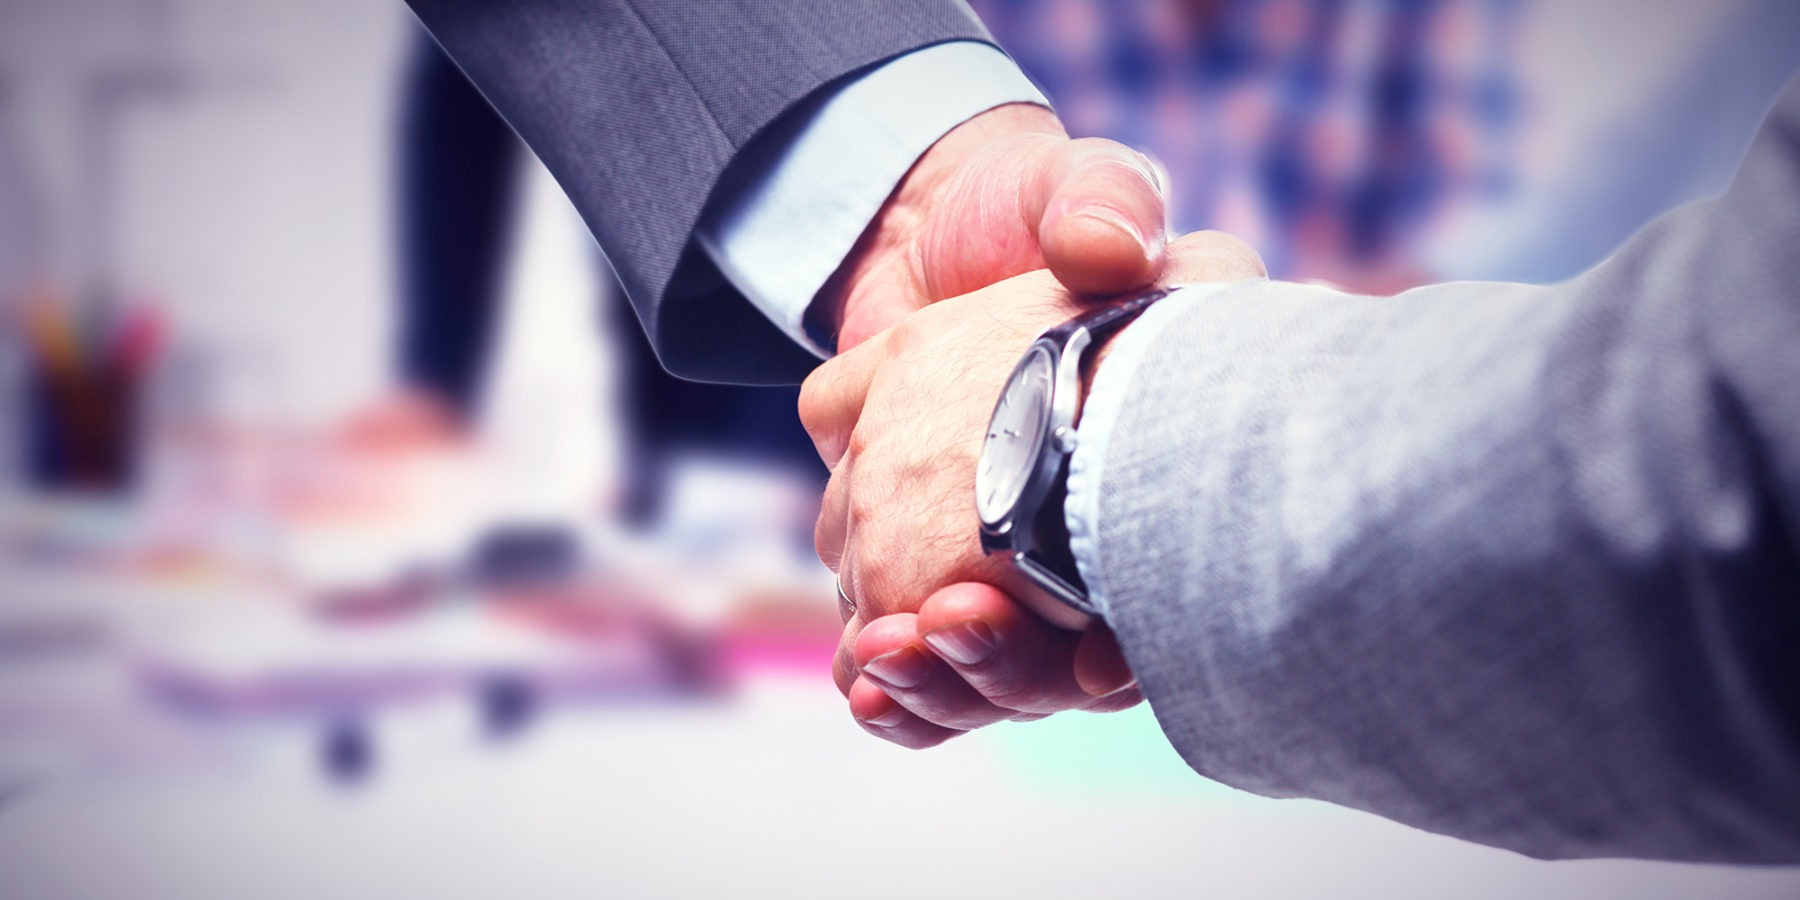 close up image of two business men shaking hands after forming a partnership